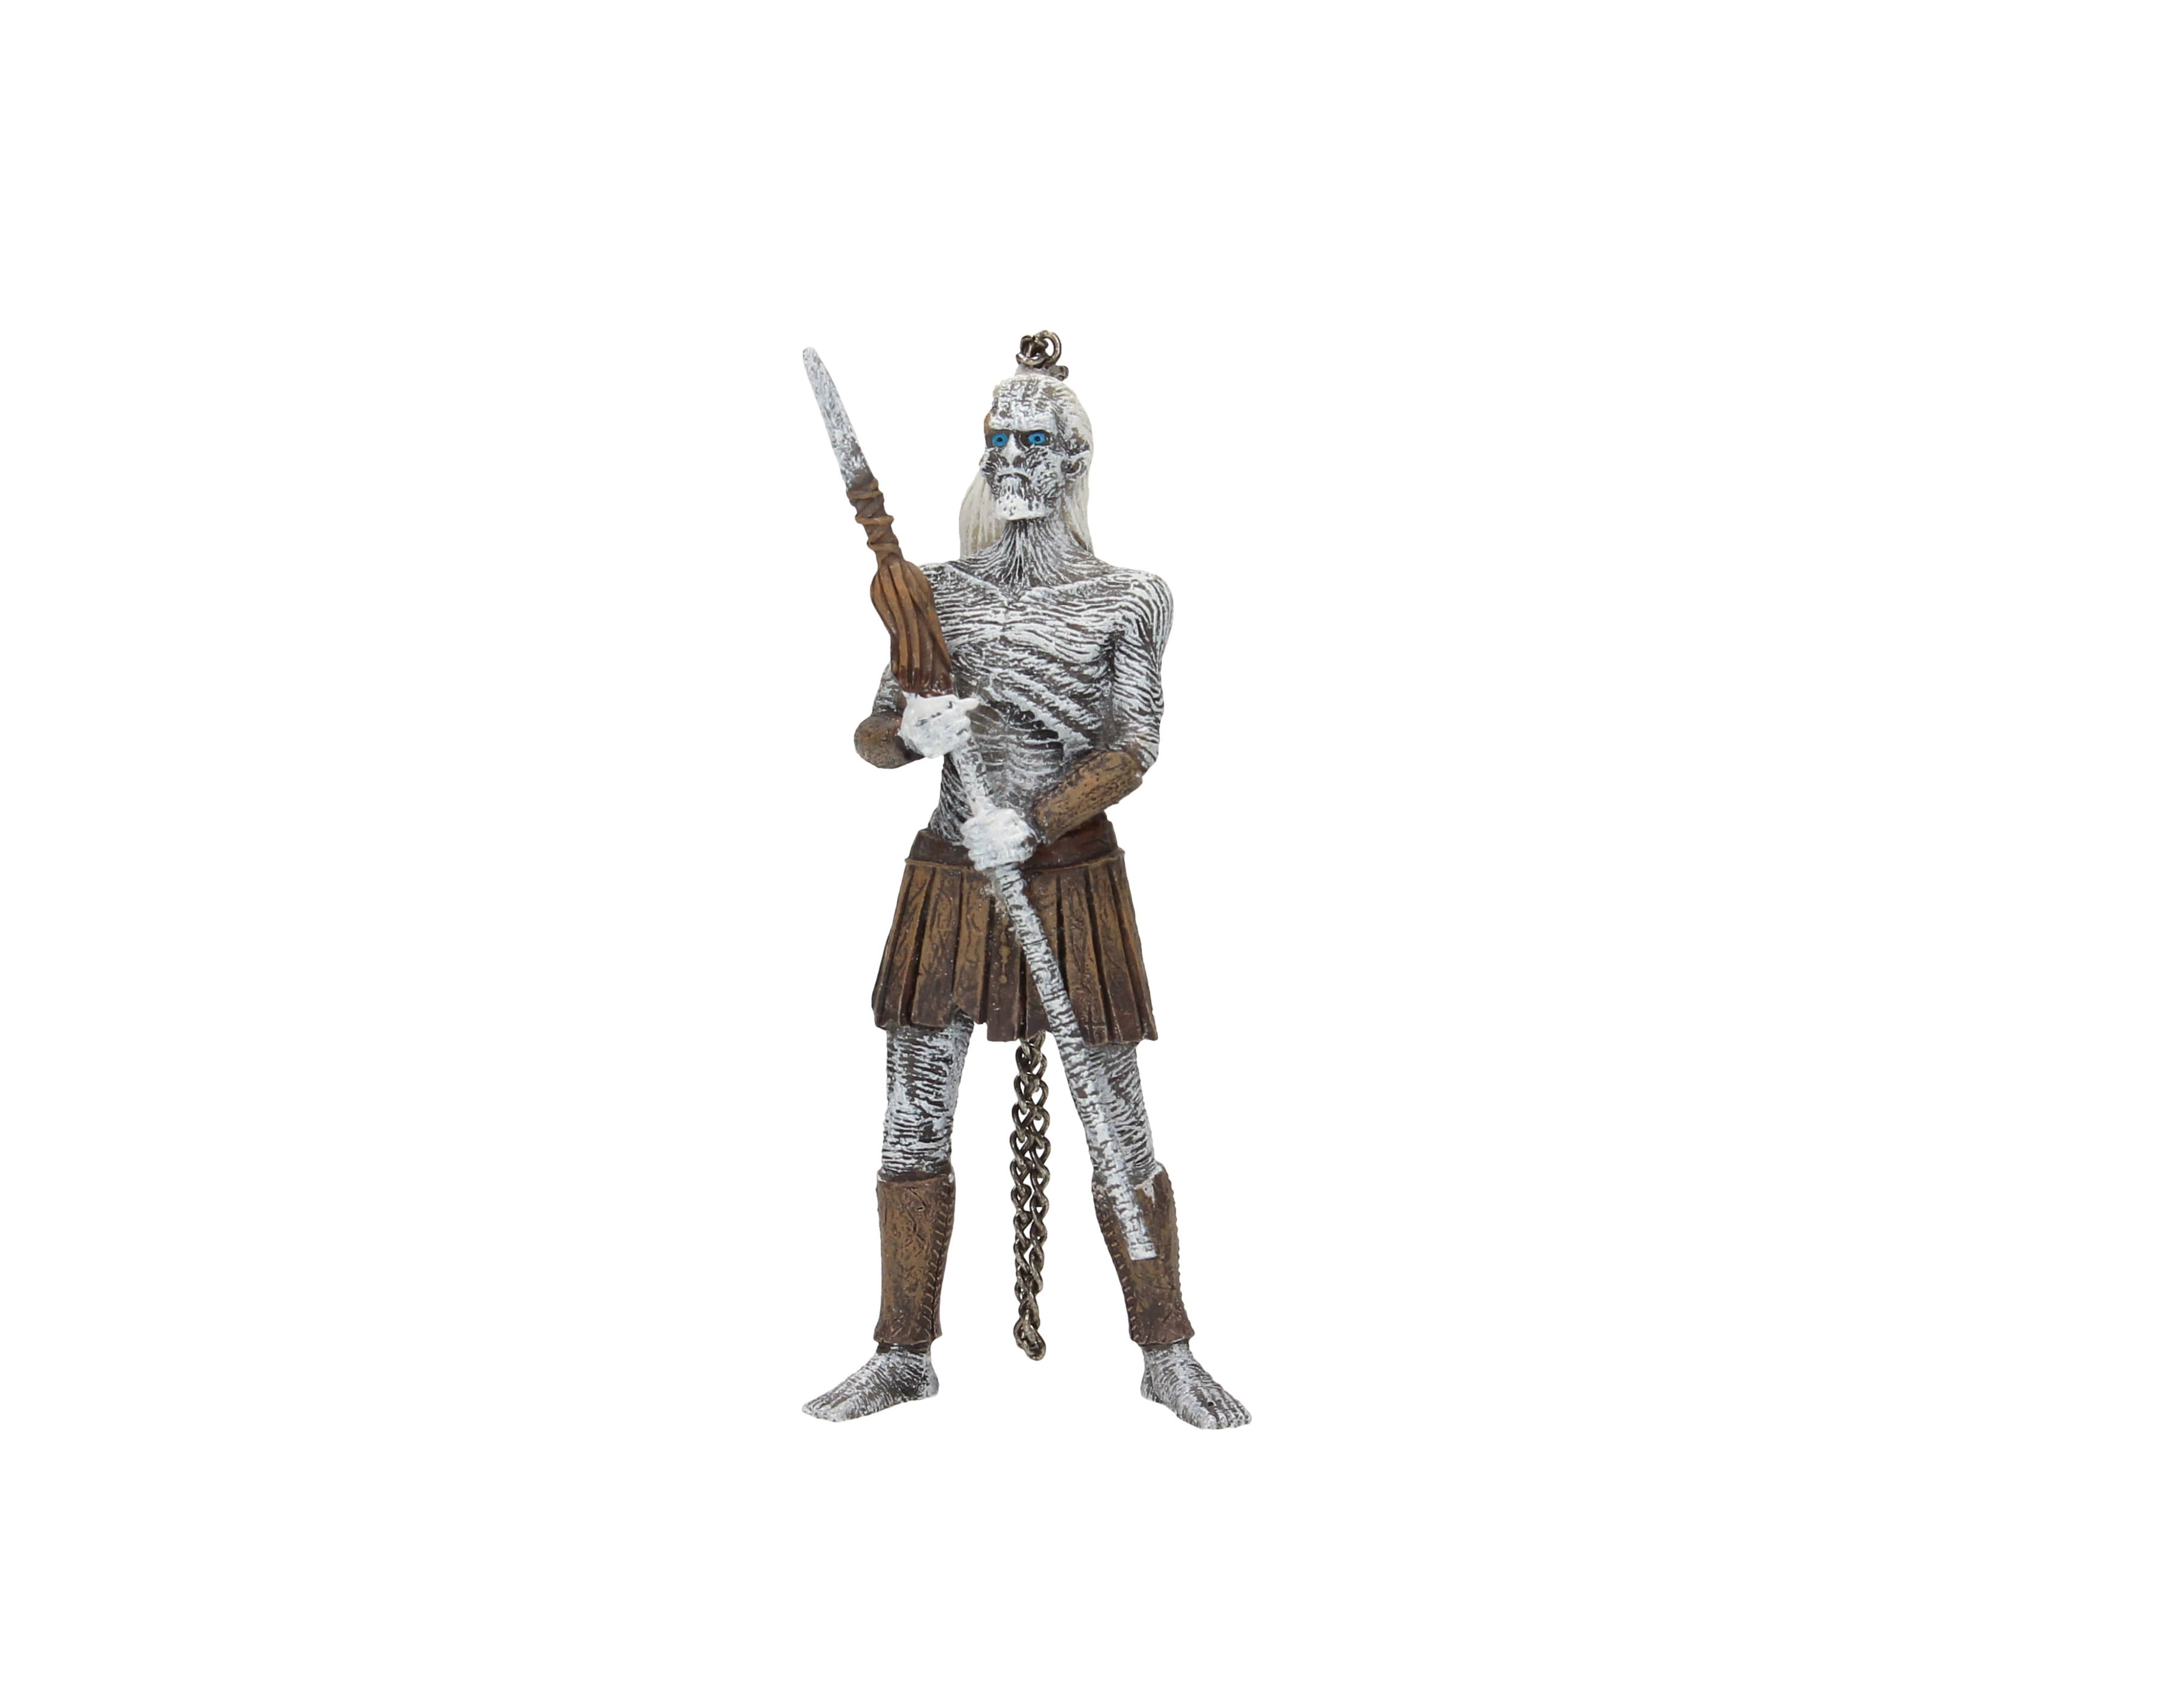 CAMINANTE BLANCO ADORNO NAVIDAD 11 CM GAME OF THRONES